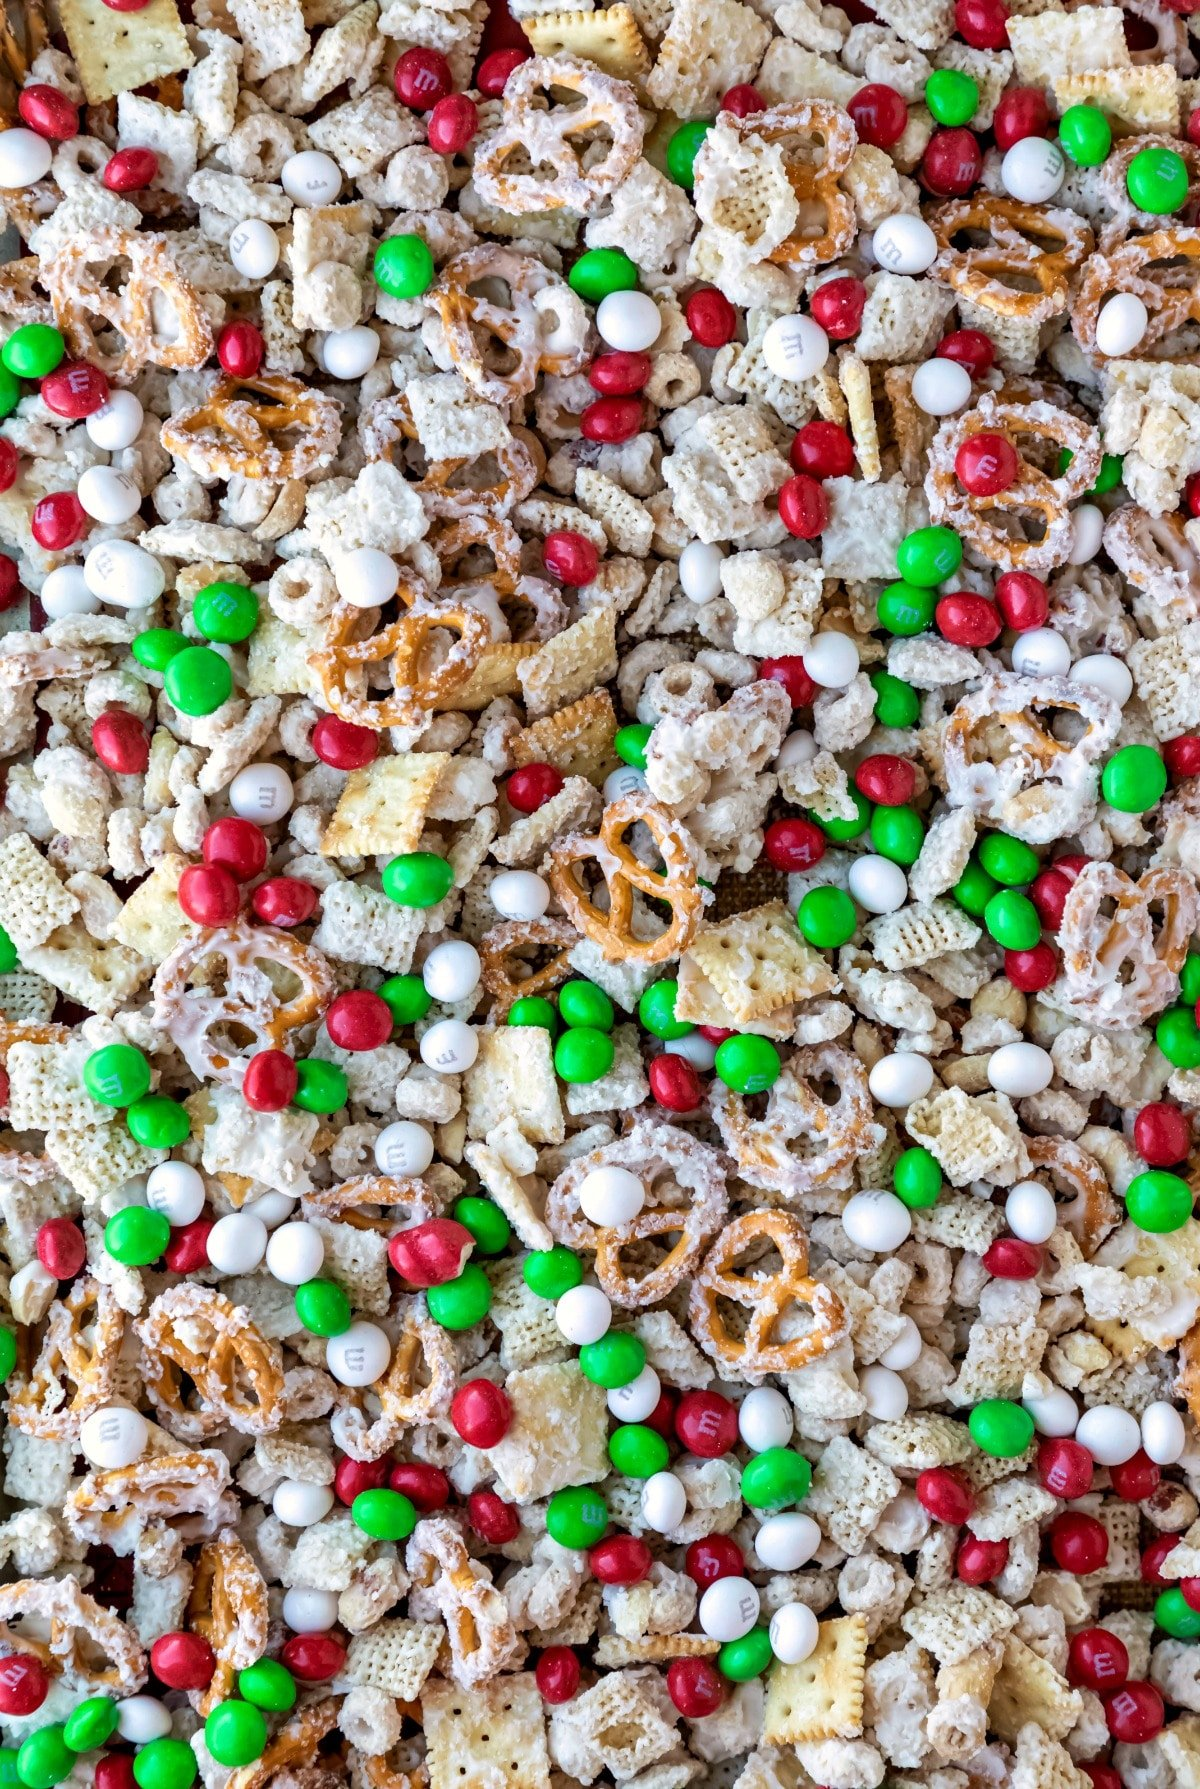 Tray full of white chocolate party mix